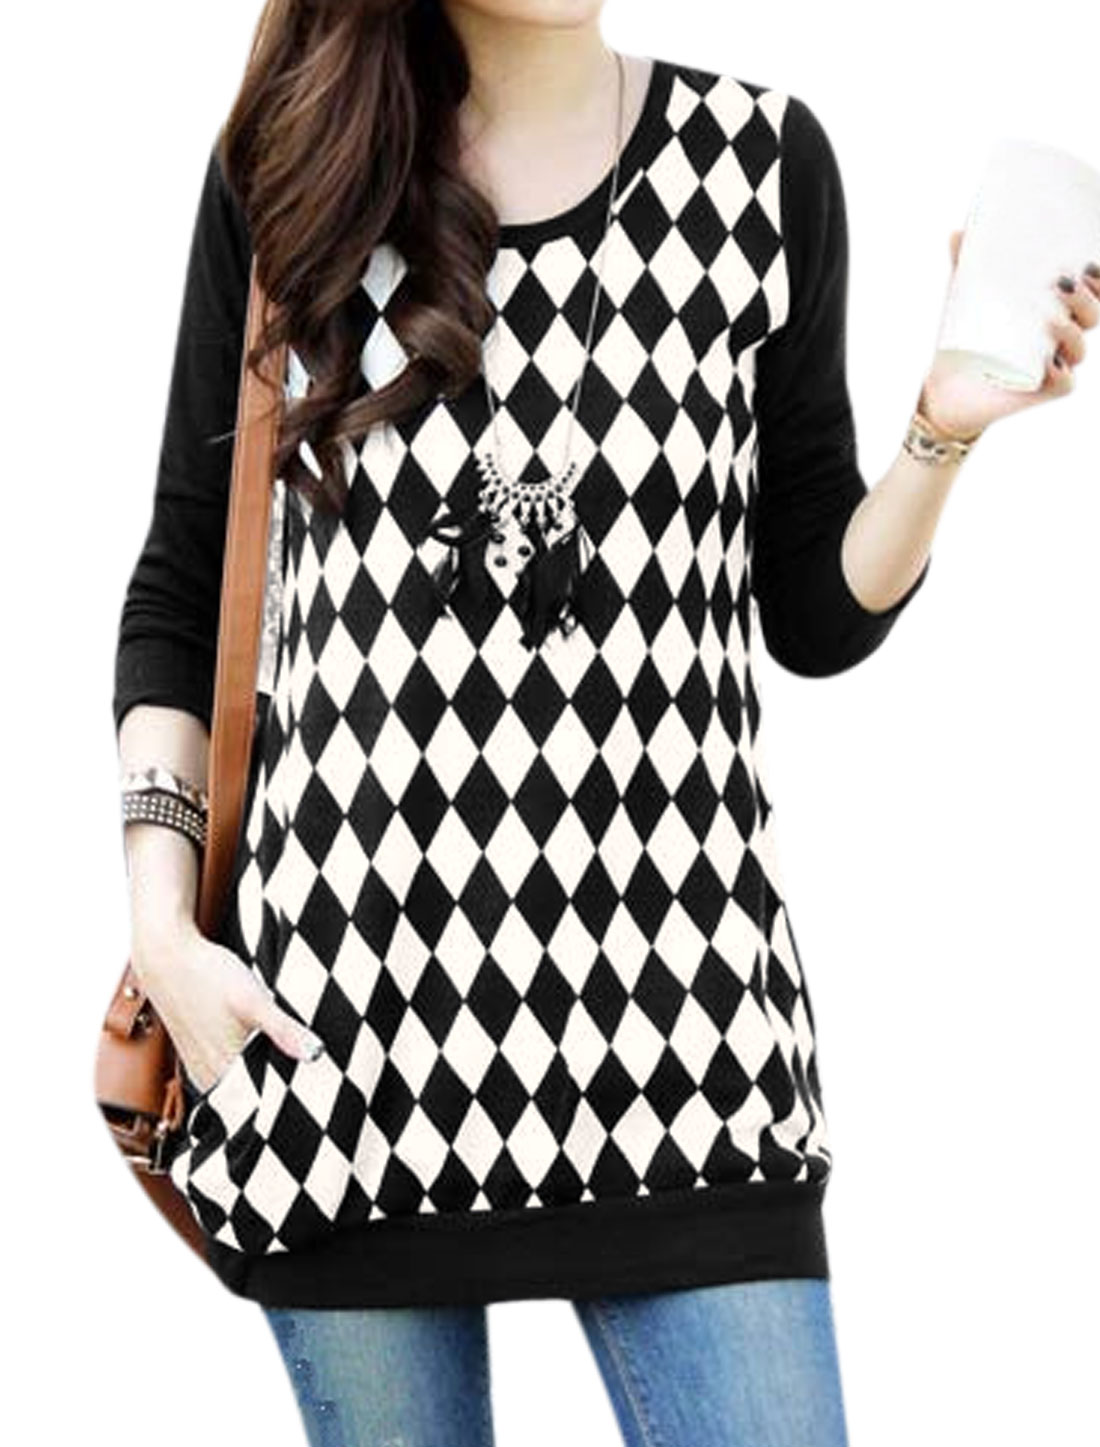 Ladies Black White Long Sleeves Round Neck Pullover Argyle Pattern Casual Tunic Top XS